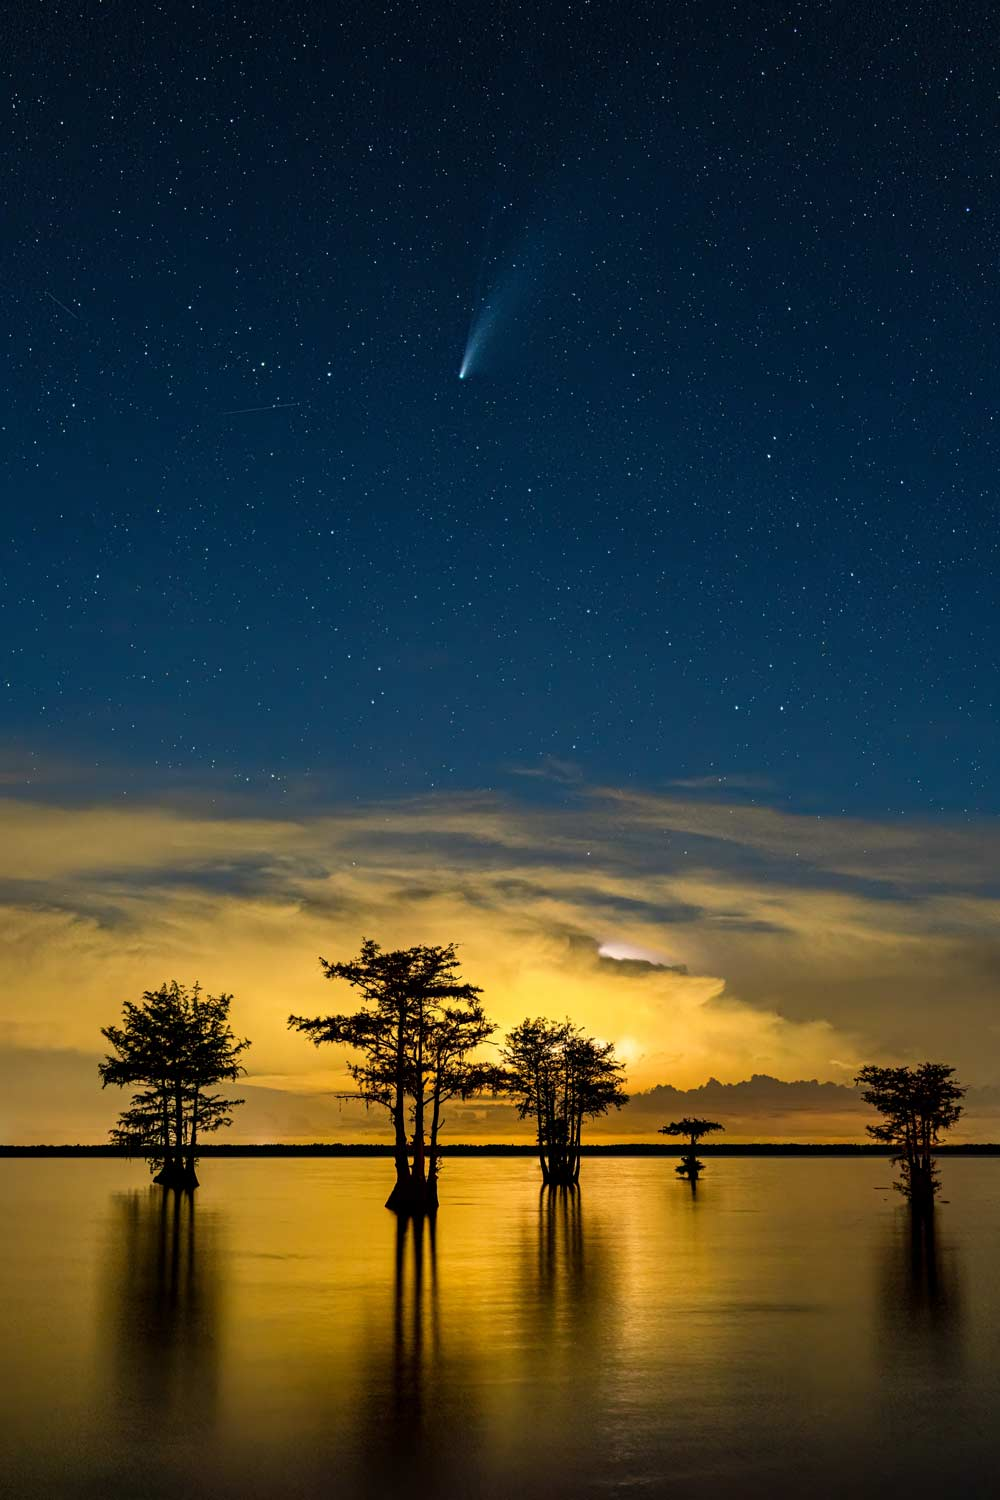 Lake Moultrie, NEOWISE